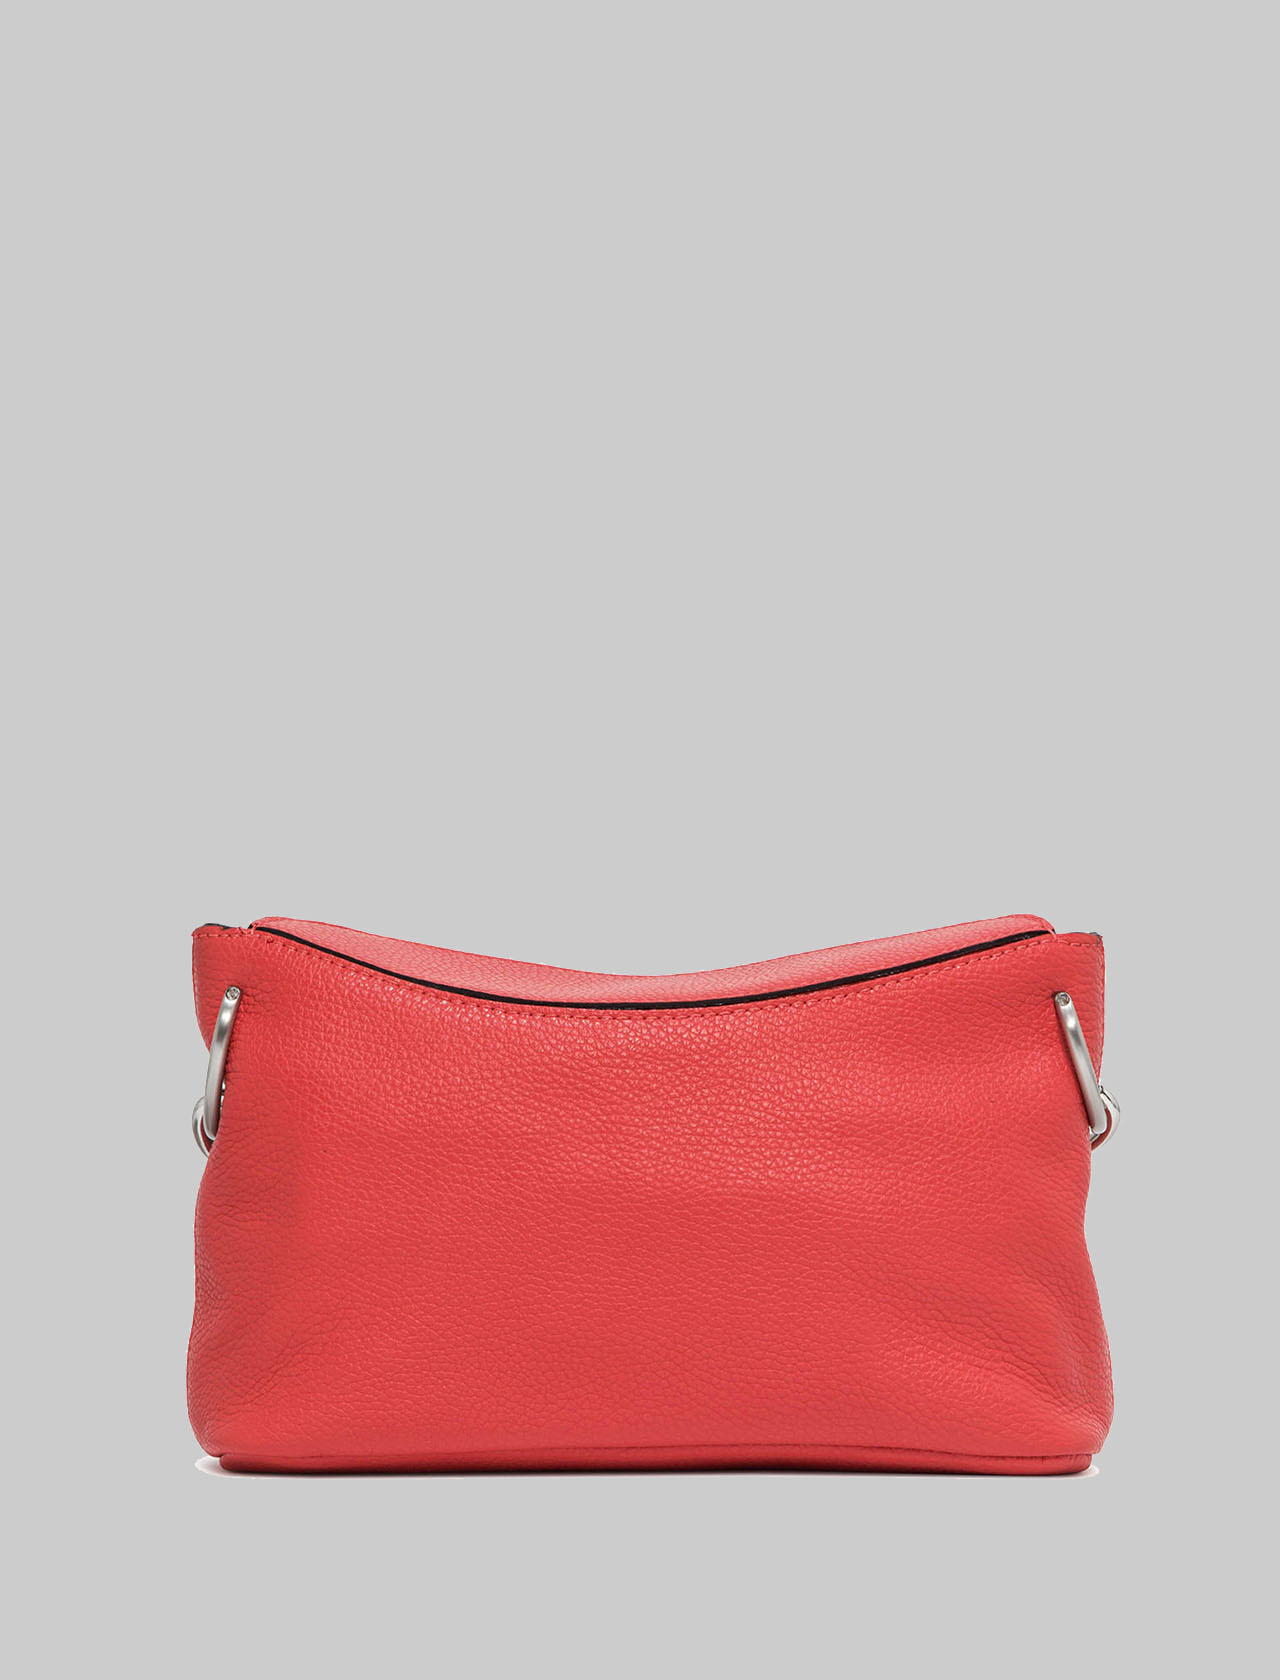 Sophia Woman Shoulder Bag In Red Leather And Silver Chain With Adjustable And Removable Shoulder Strap Gianni Chiarini | Bags and backpacks | BS851611707